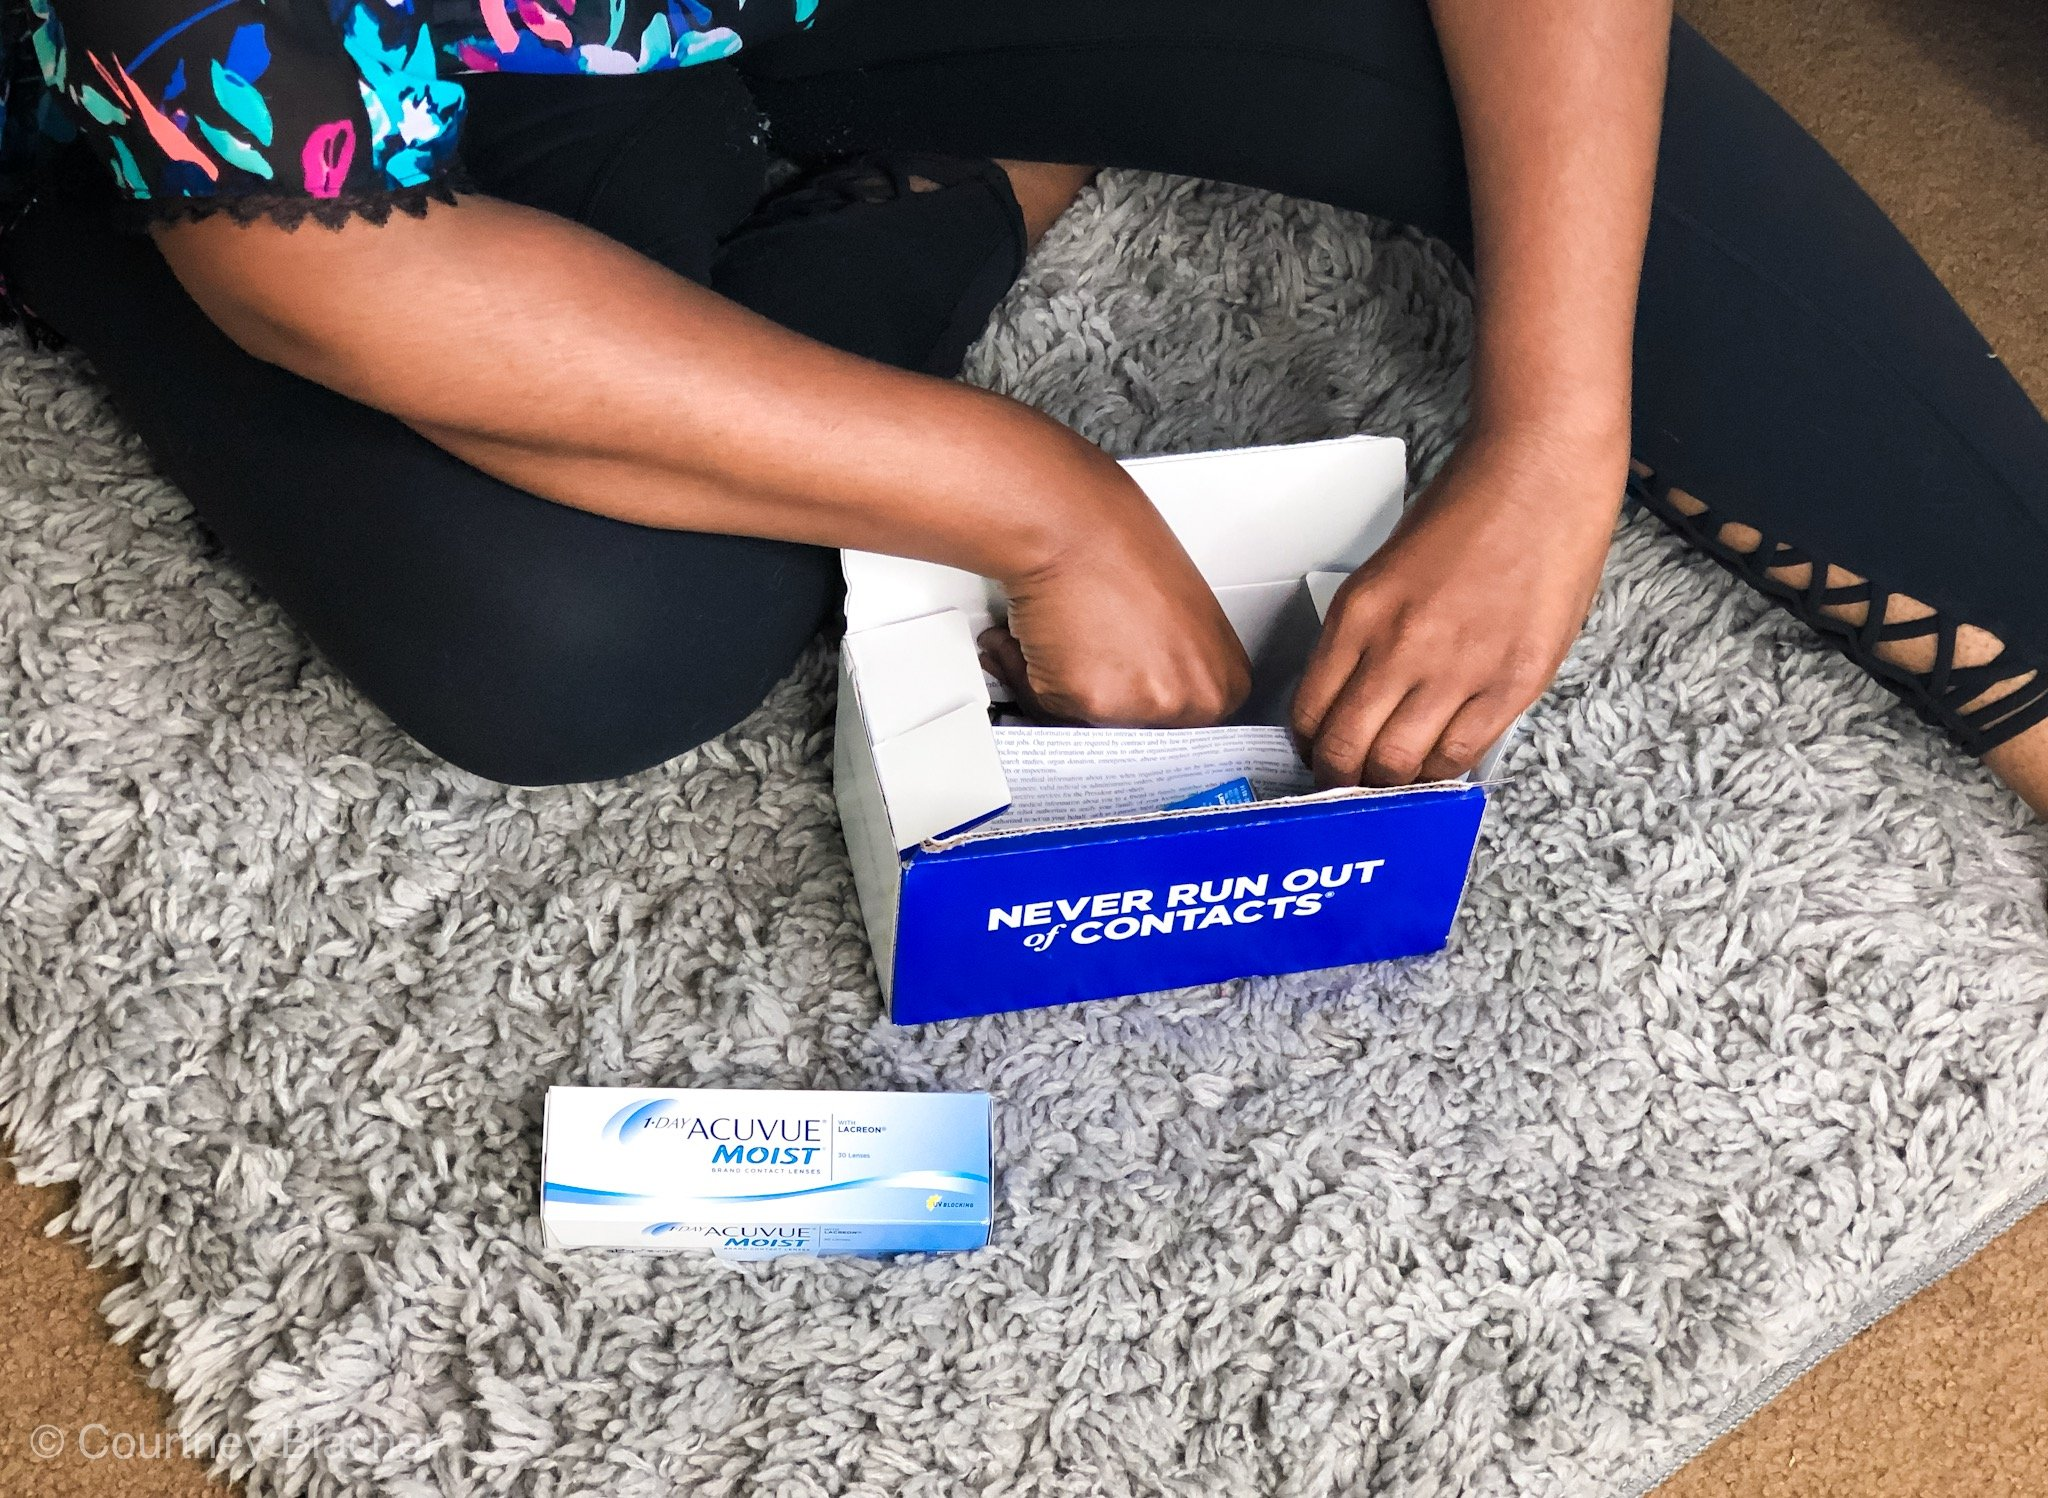 Have you ever run on of contacts, needed an updated exam but didn't have enough time? Don't worry, there's now an app for that. Thanks to 1800-Contacts, you can now take an online contact lens exam via there app and have your new contacts shipped right to your door. They even offer overnight shipping!